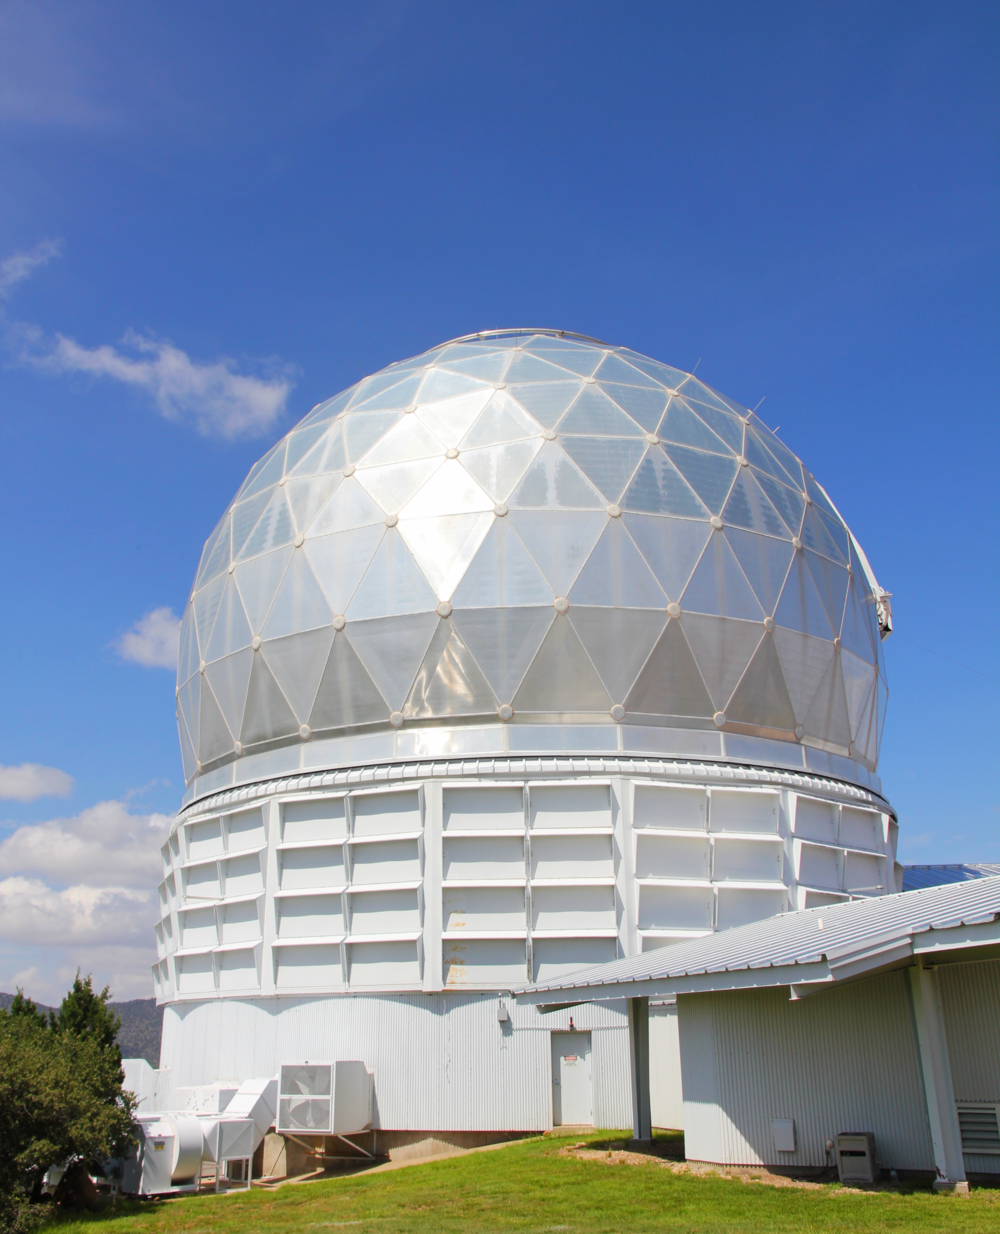 Hobby-Eberly Telescope McDonald Observatory Fort Davis, Texas